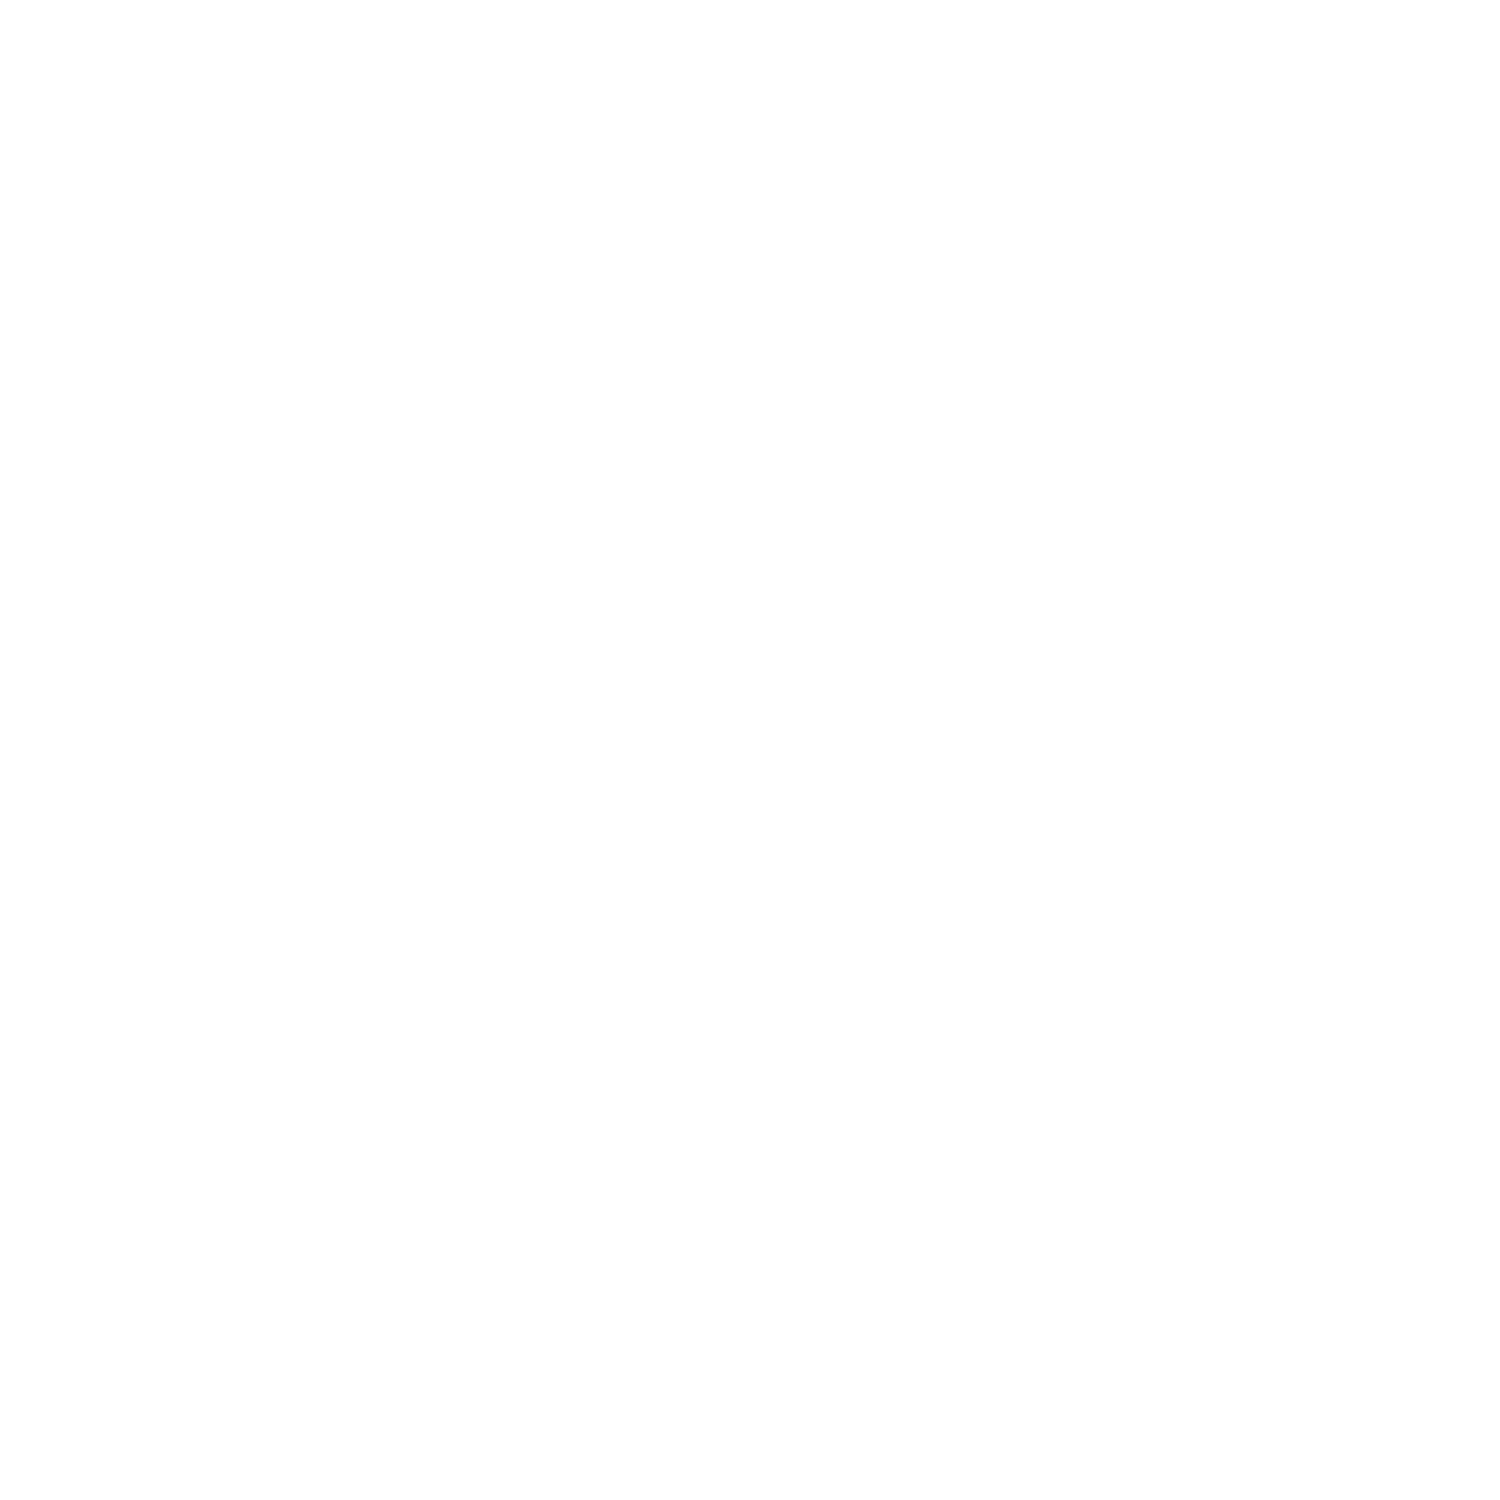 Pearl Mfg. Co.